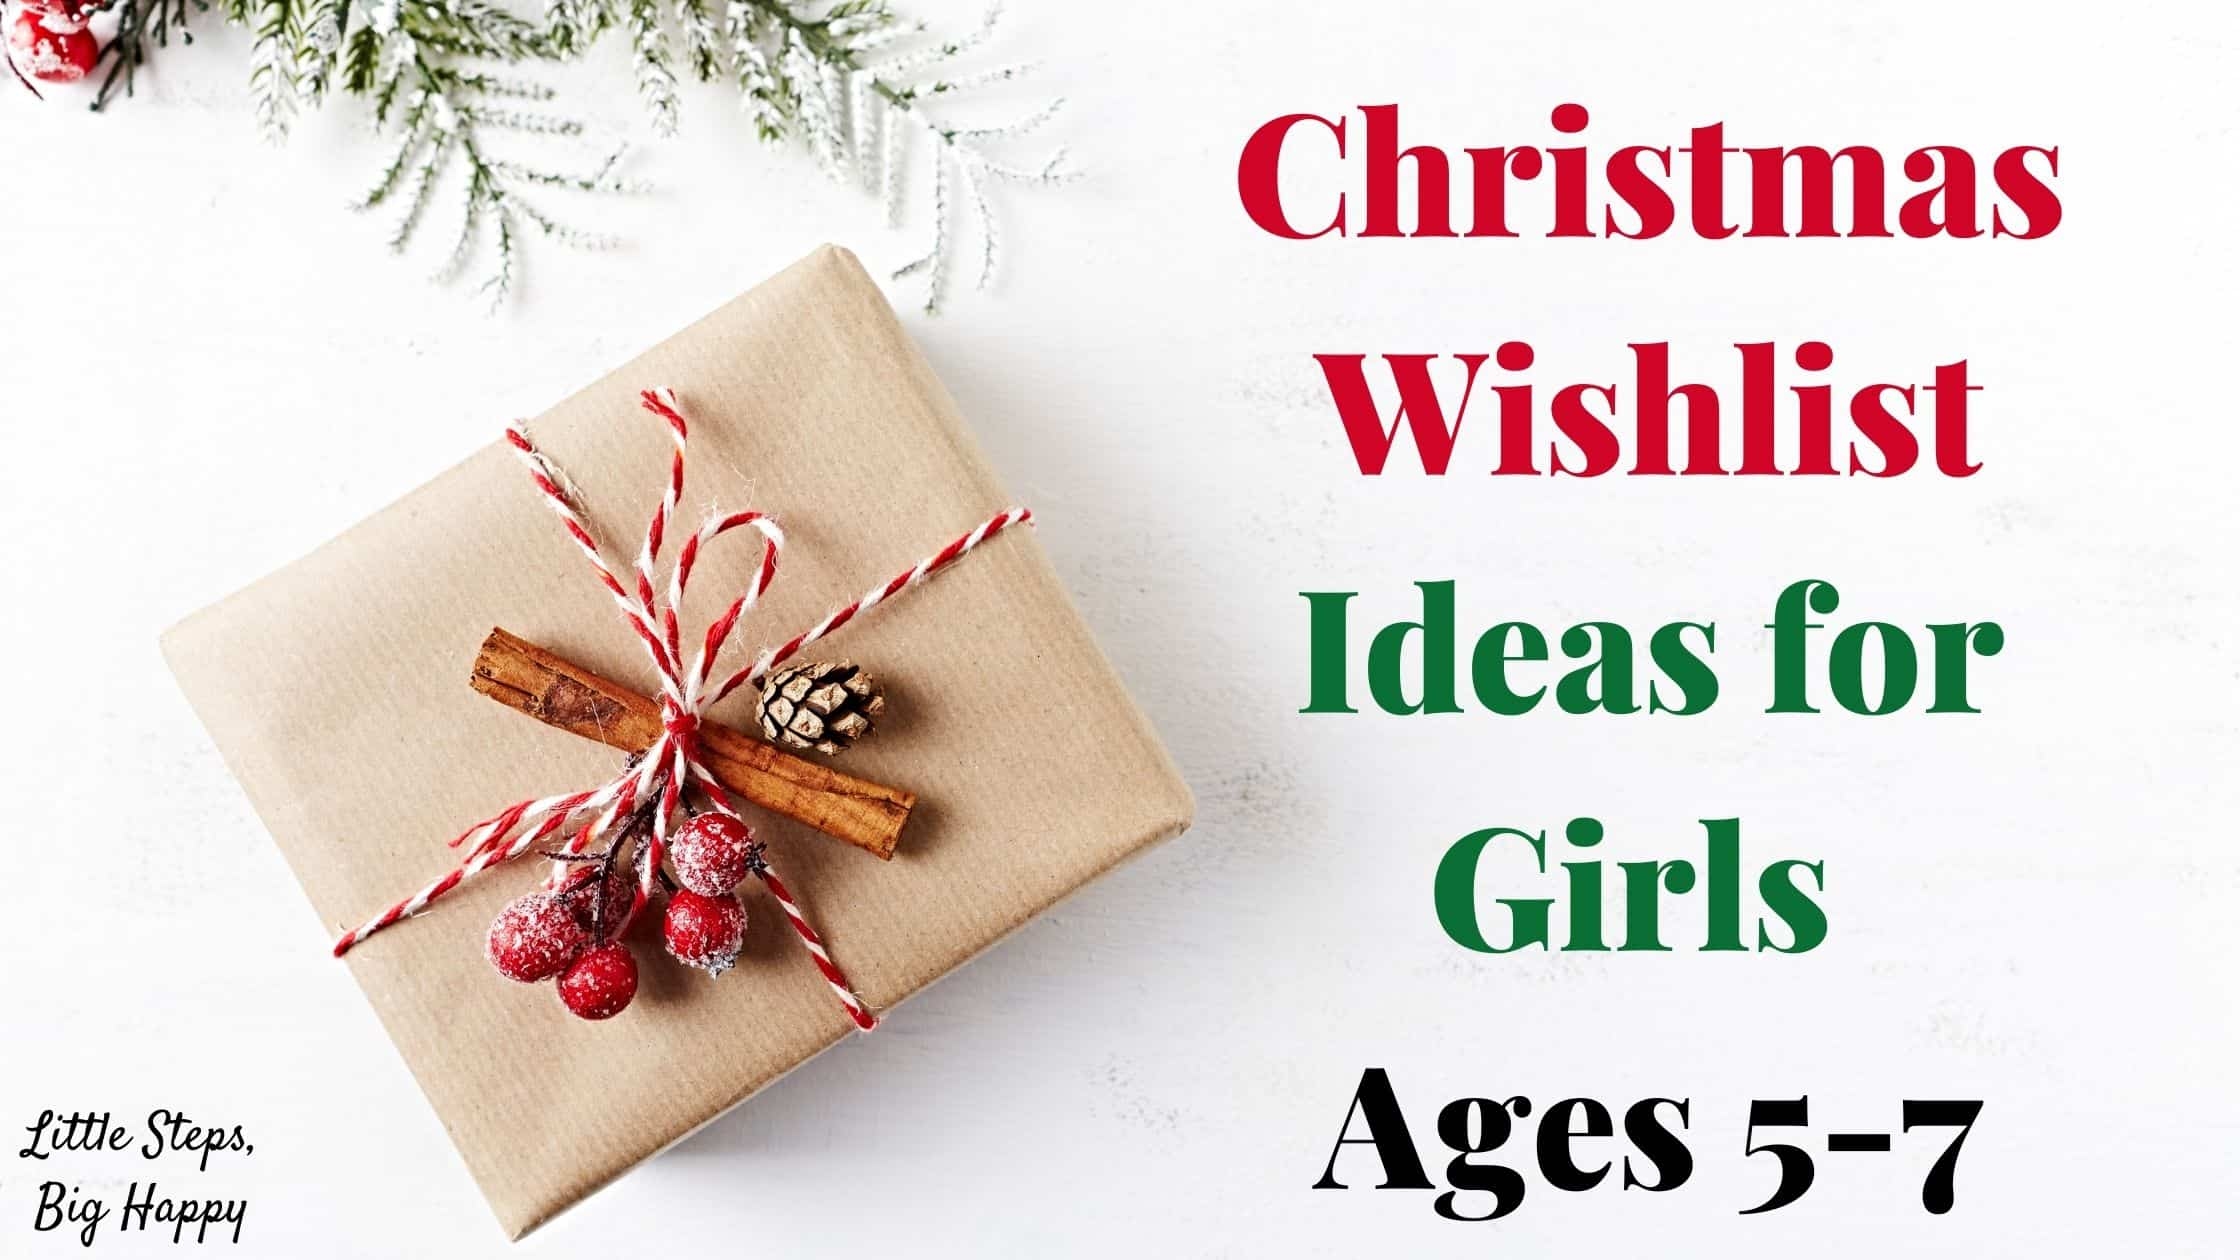 christmas ideas for girls ages 5-7